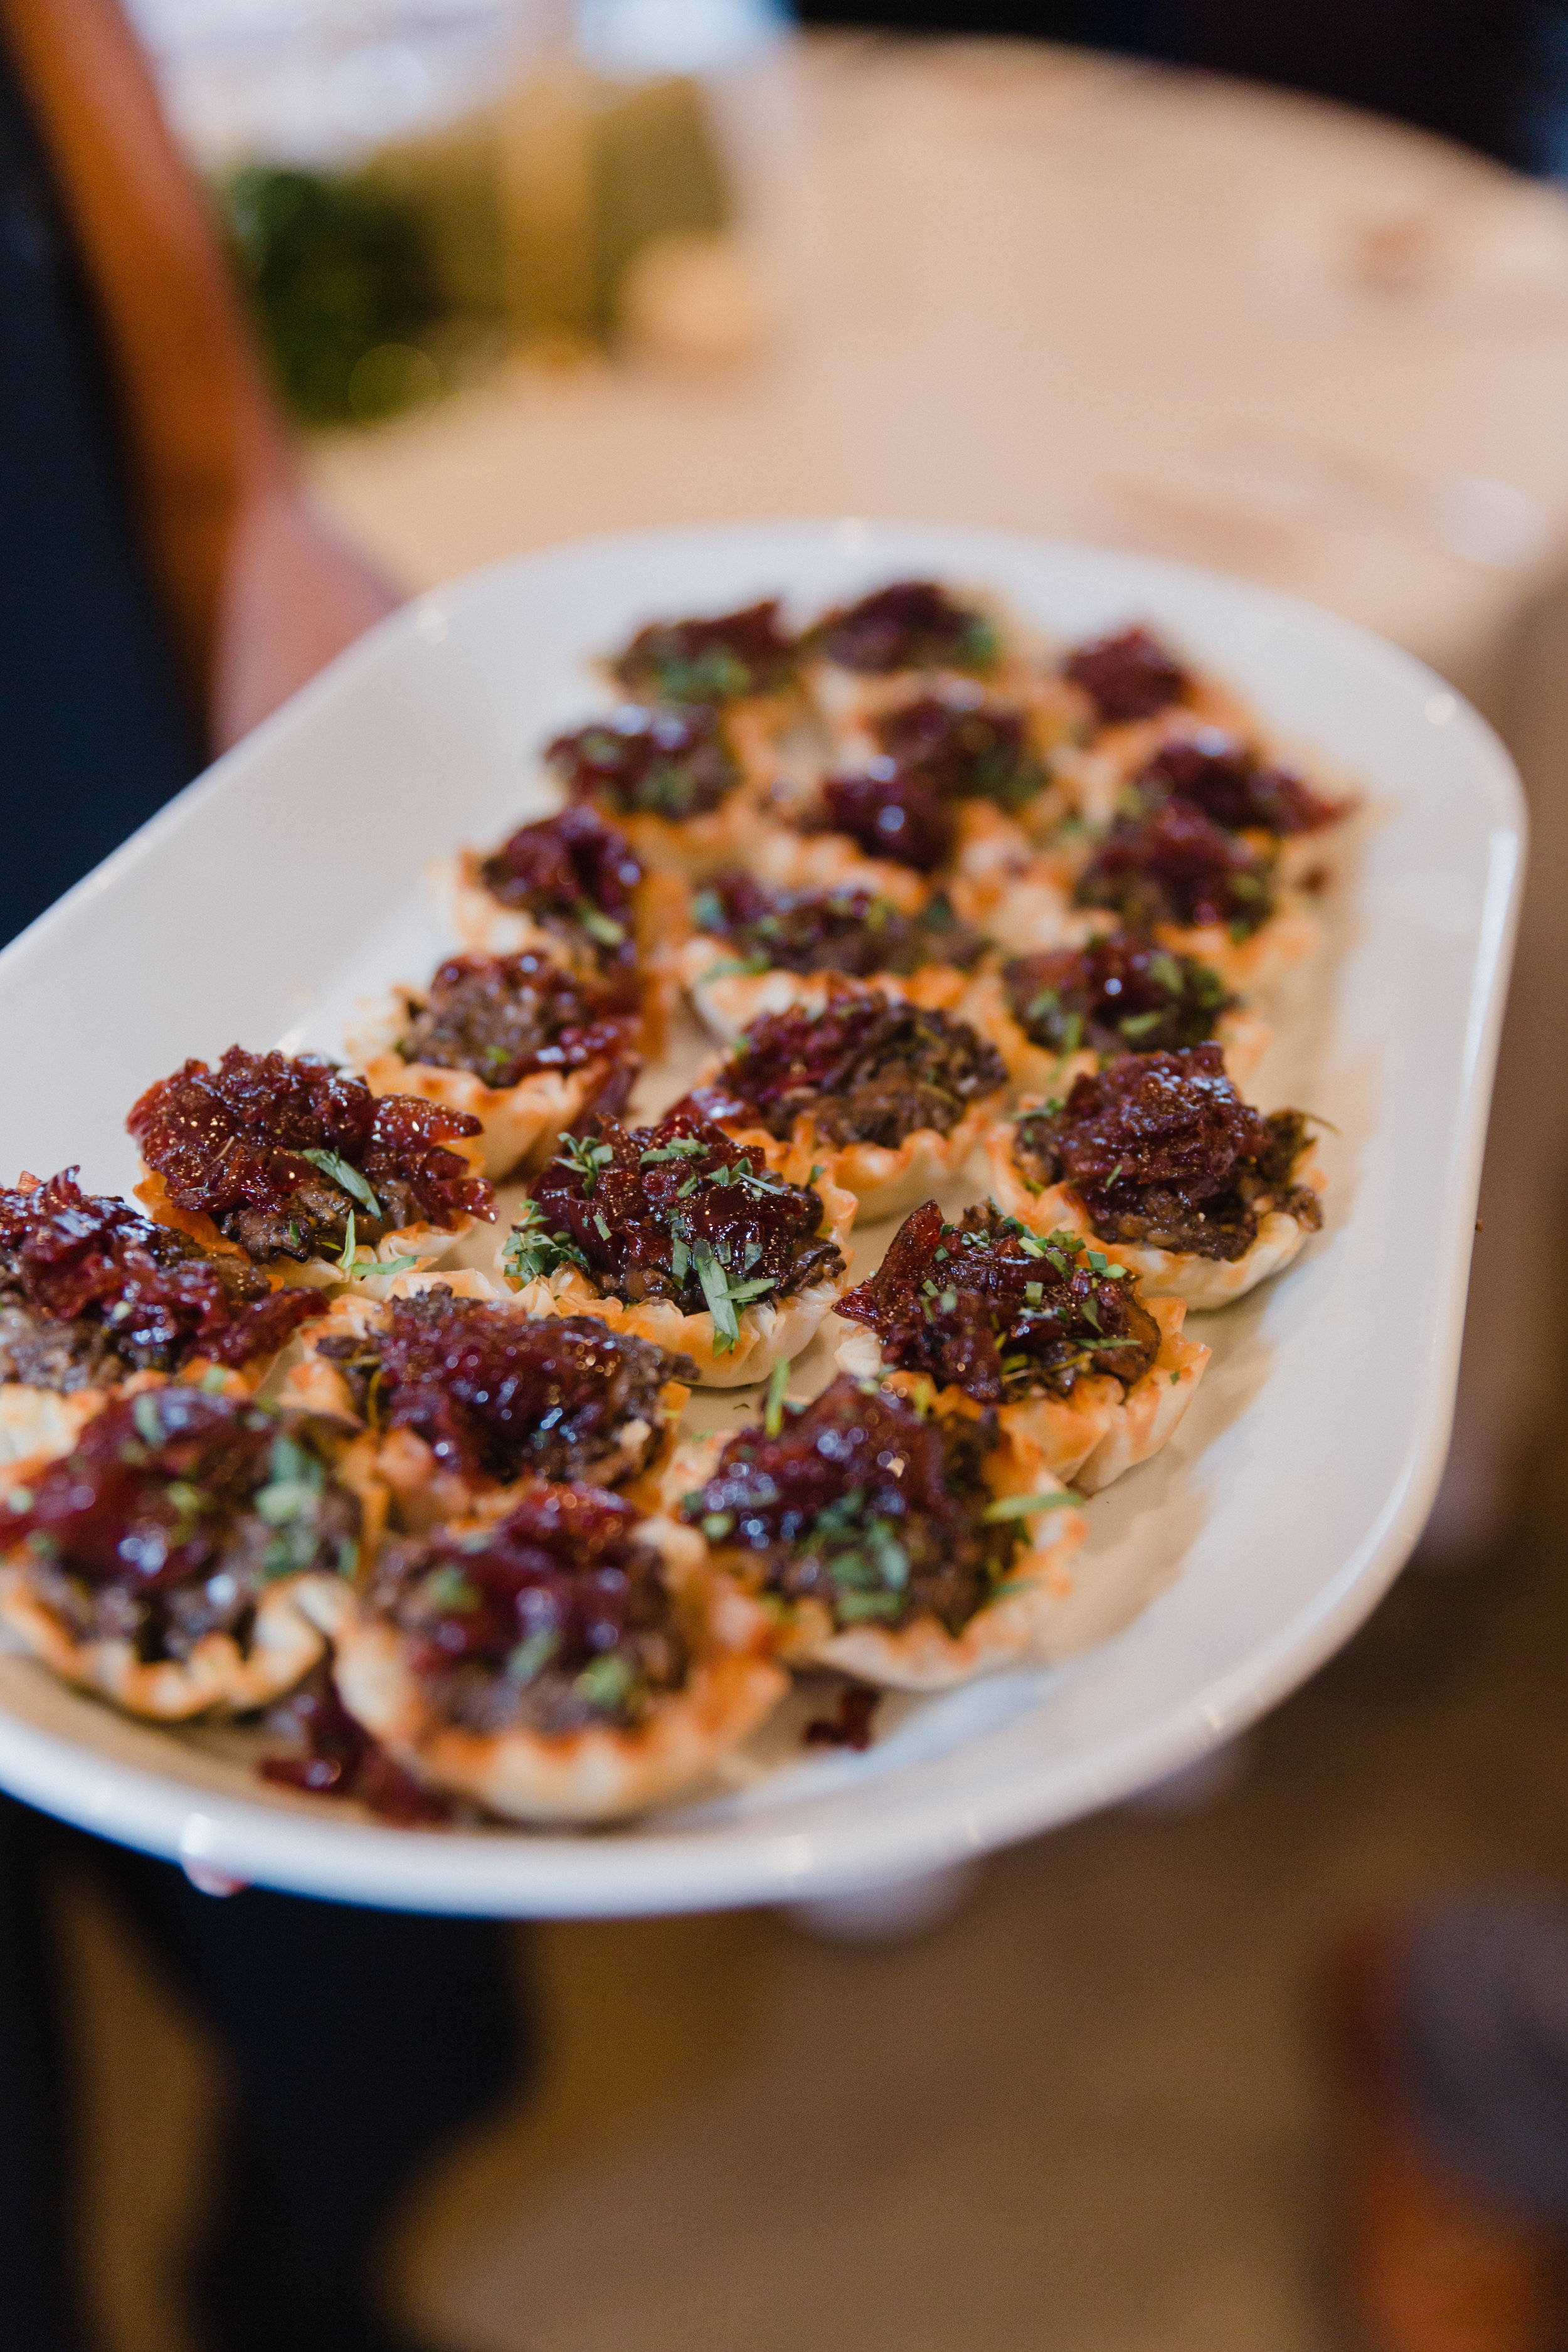 Mixed Mushroom Tartlette with Red Onion Marmalade